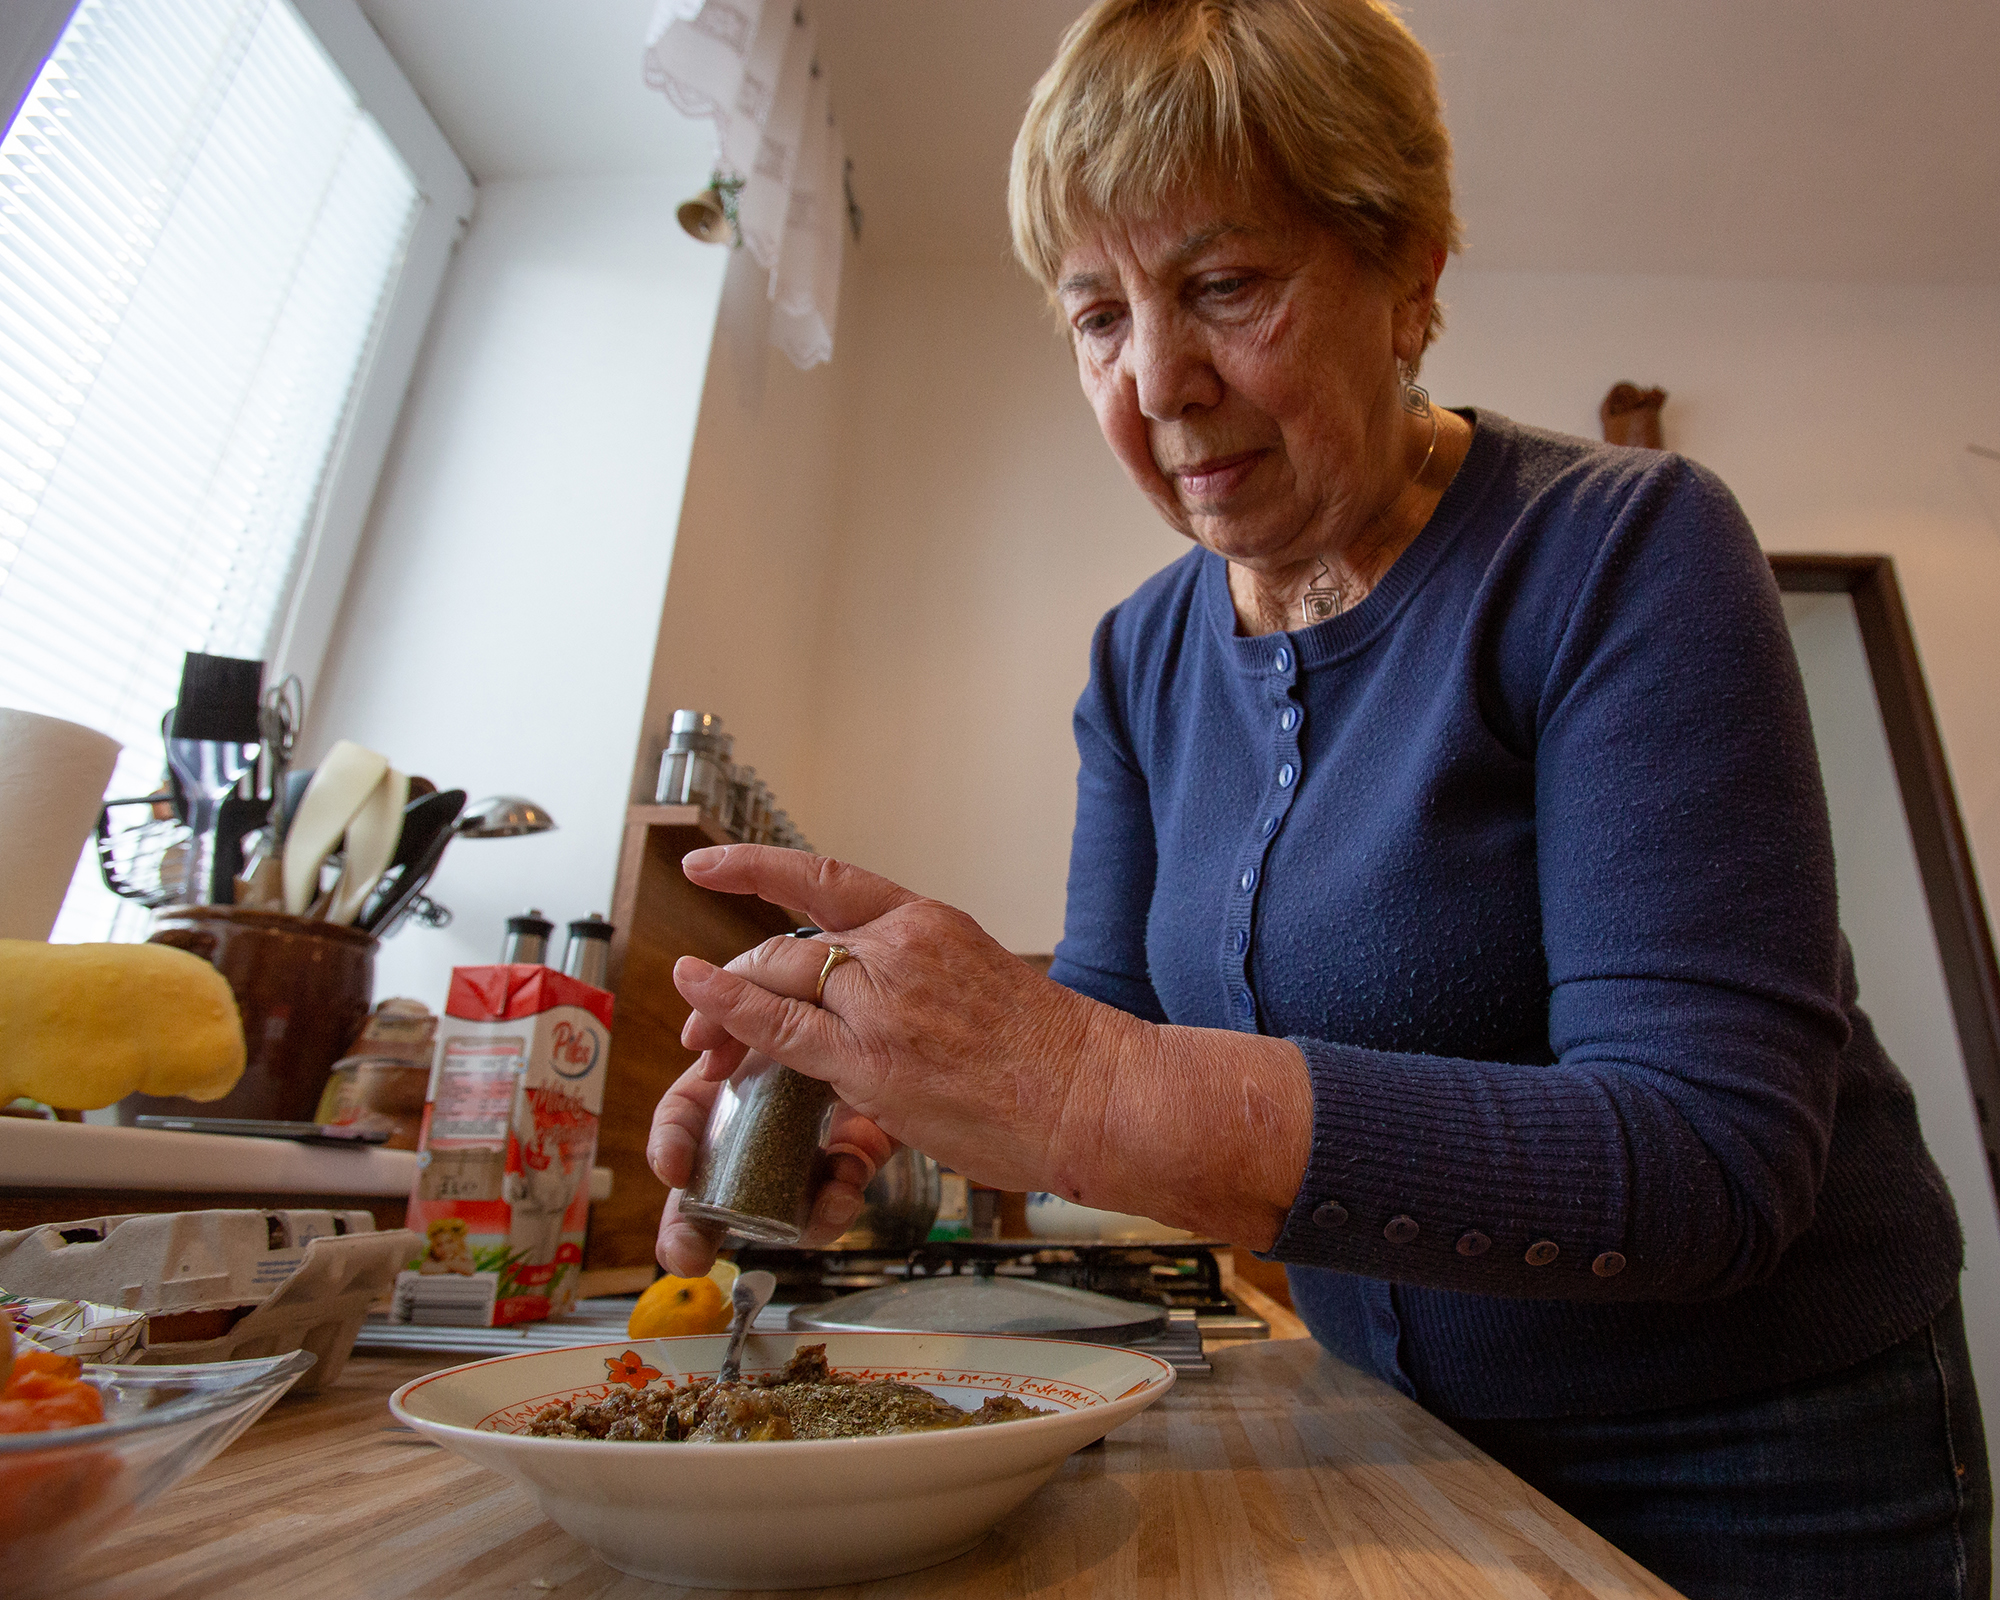 older woman grinding pepper onto a bowl of food